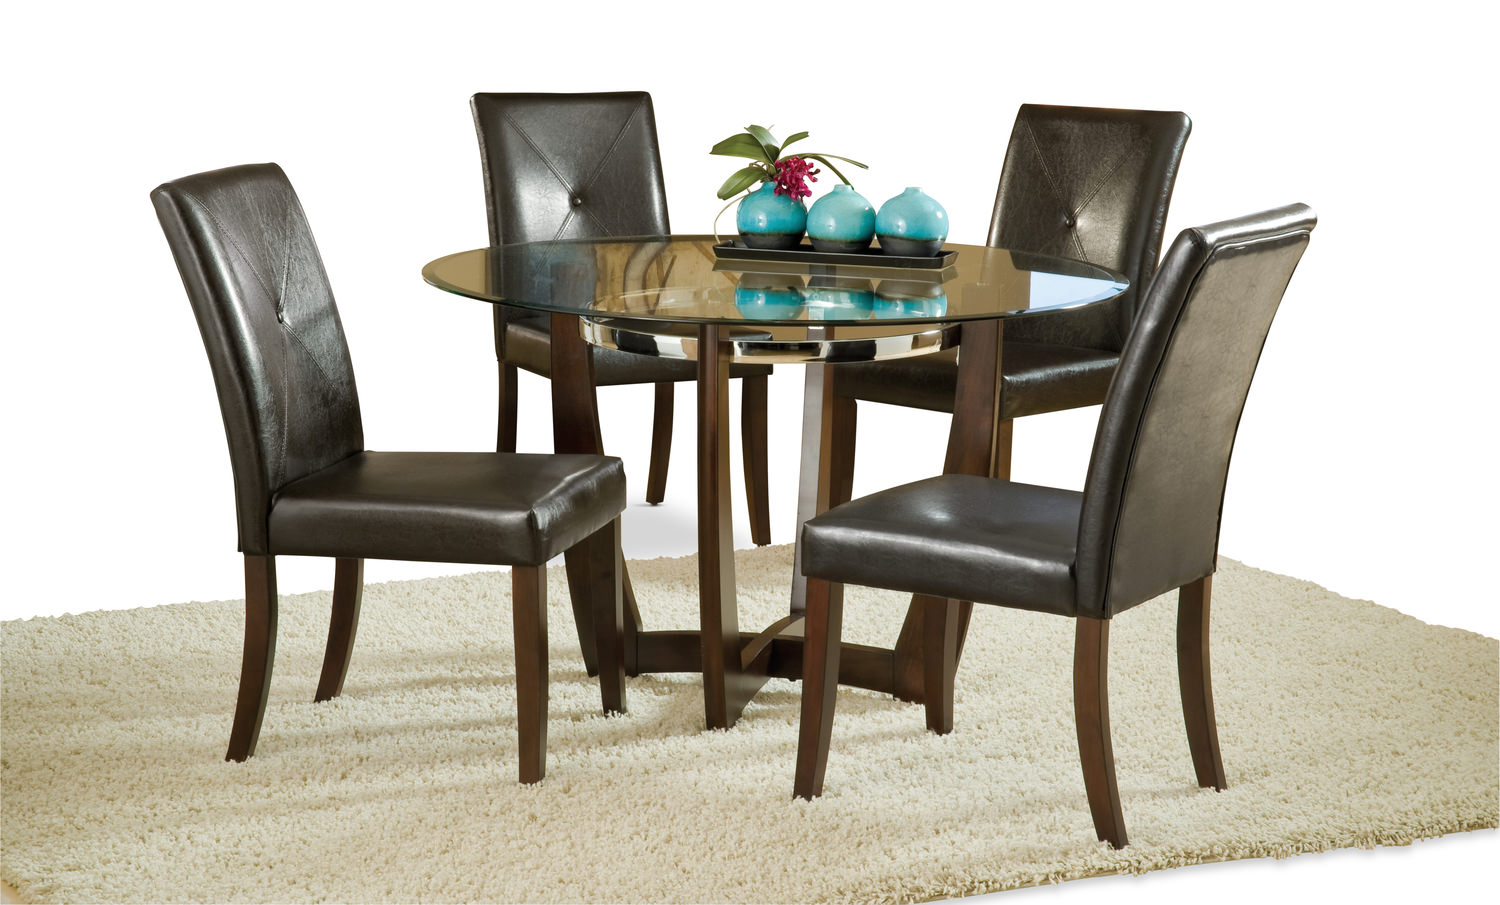 venus glass top table with 4 dining chairs dock86. Black Bedroom Furniture Sets. Home Design Ideas